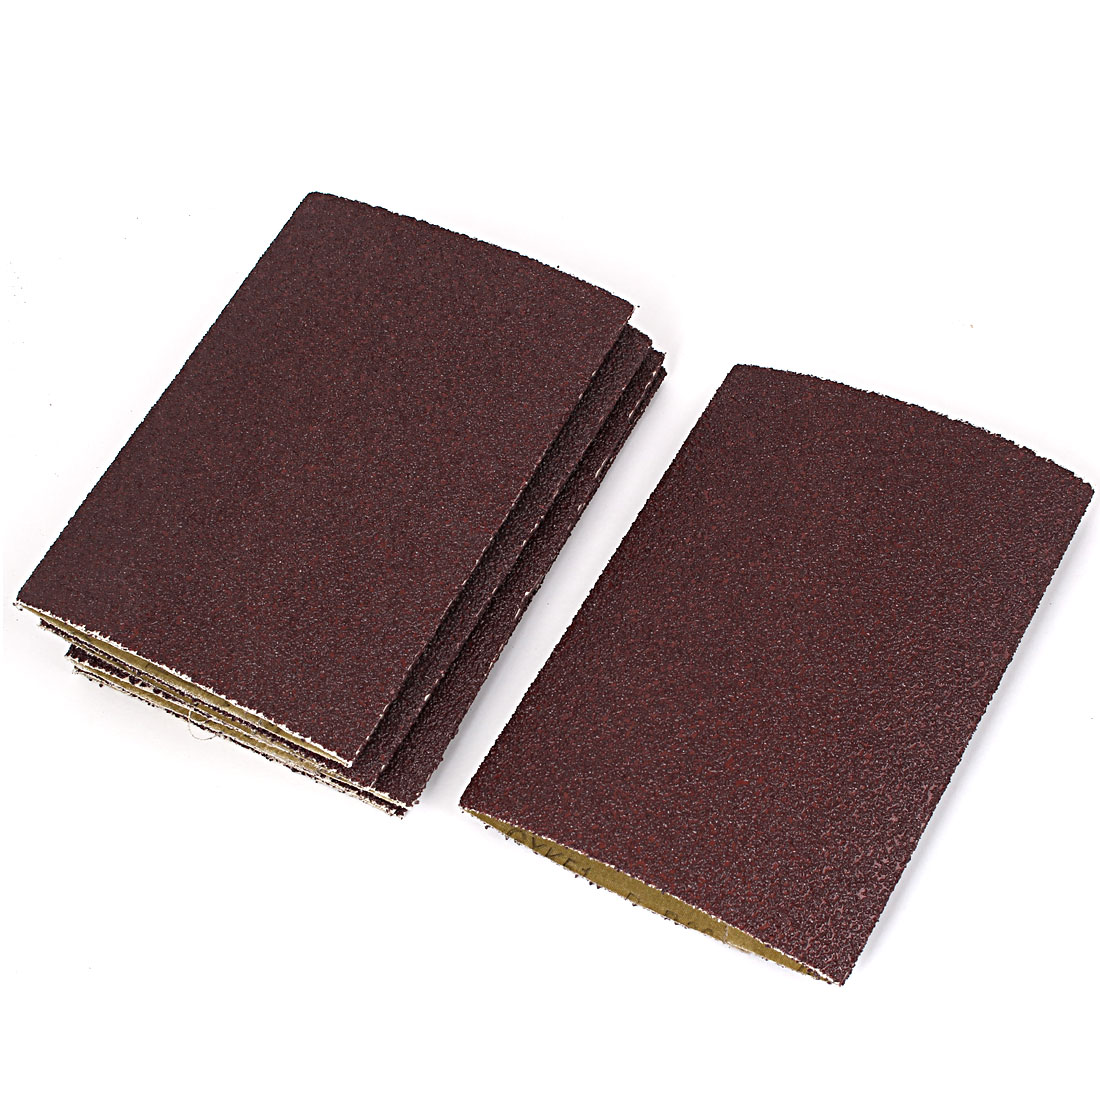 Woodworking 340mmx230mm 80 Grit Abrasive Sanding Belt Sandpaper 6pcs